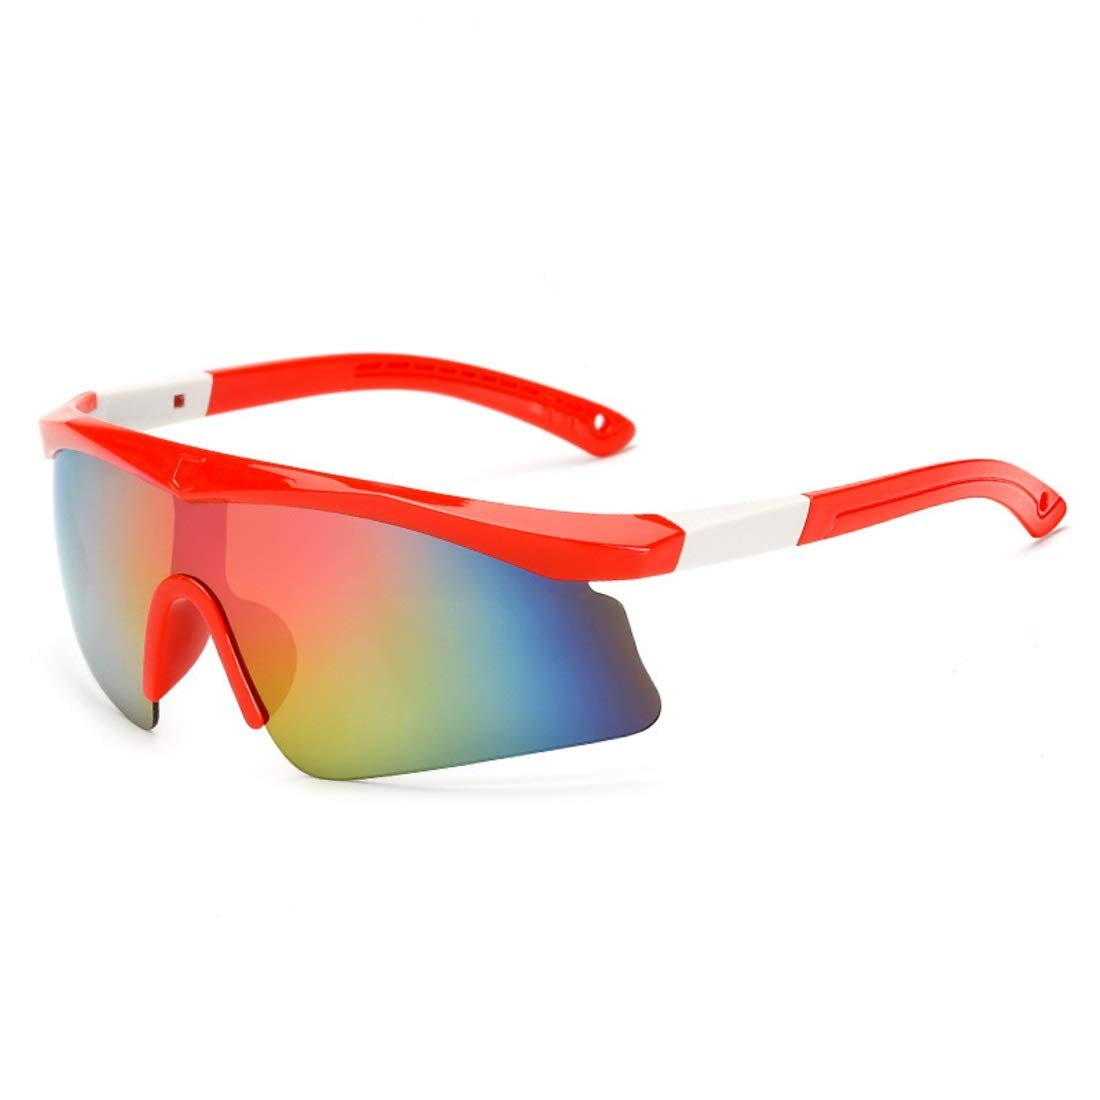 BAOYIT Outdoor Riding Windproof Sand-Proof Glasses Men and Women Riding Equipment Riding Sunglasses Protection Eye Glass (Color : A) by BAOYIT